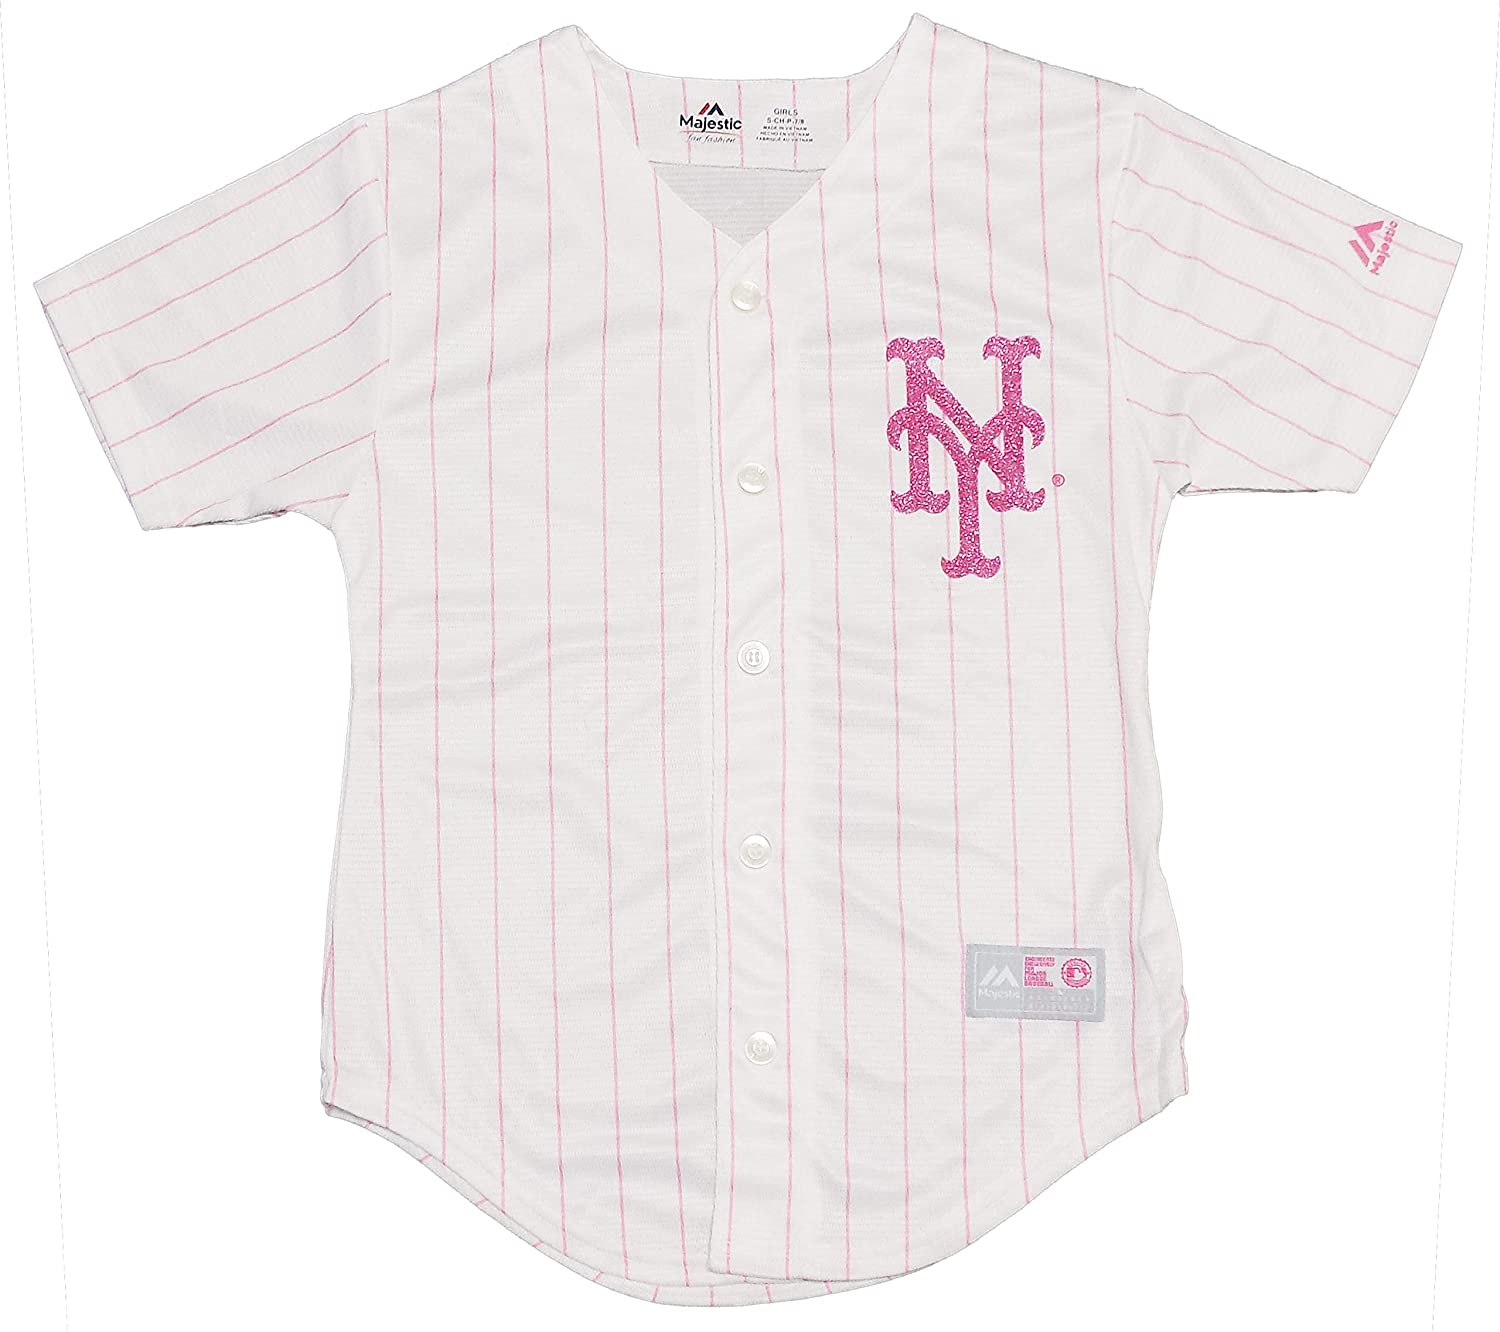 outlet store 933c0 94e45 Amazon.com: New York Mets Blank Girls Youth White Pink Cool ...